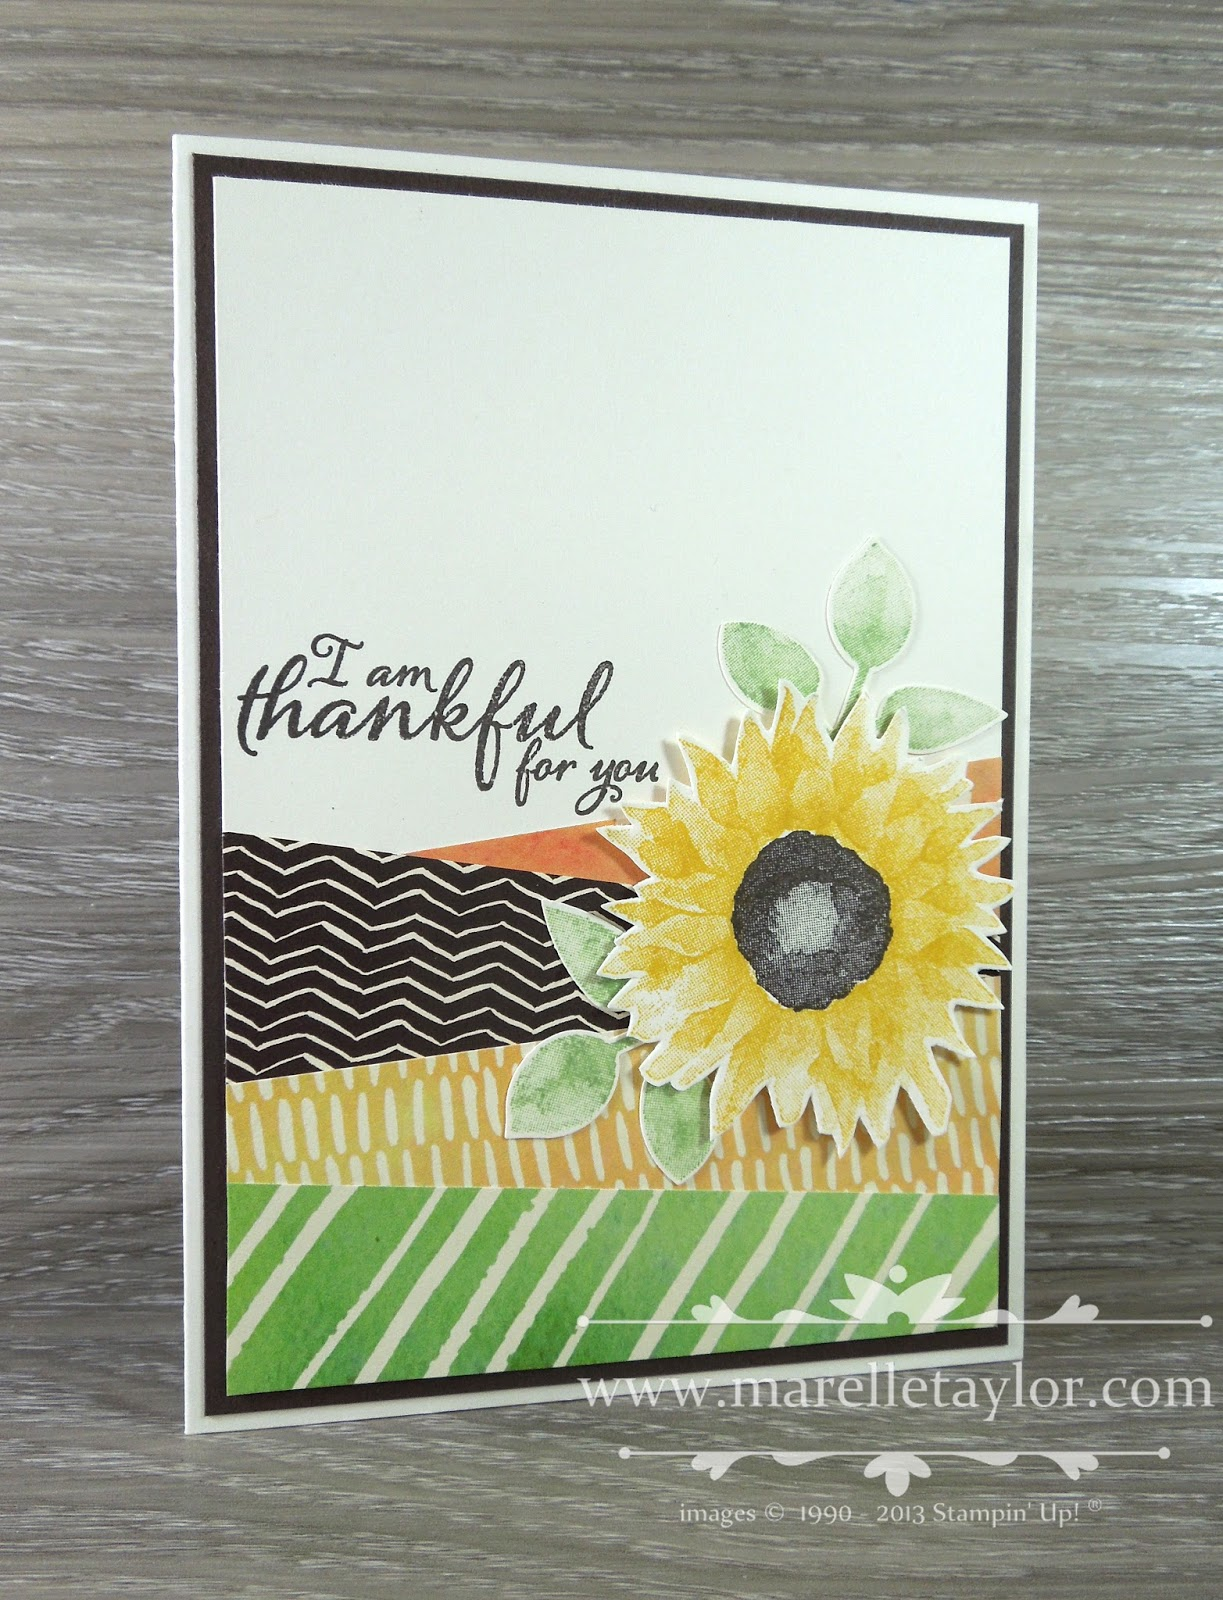 Marelle taylor stampin up demonstrator sydney australia august 2017 for the past couple of years at our stamp camp team retreat i have run a challenge called what would marelle make you can read all about it and see last kristyandbryce Gallery